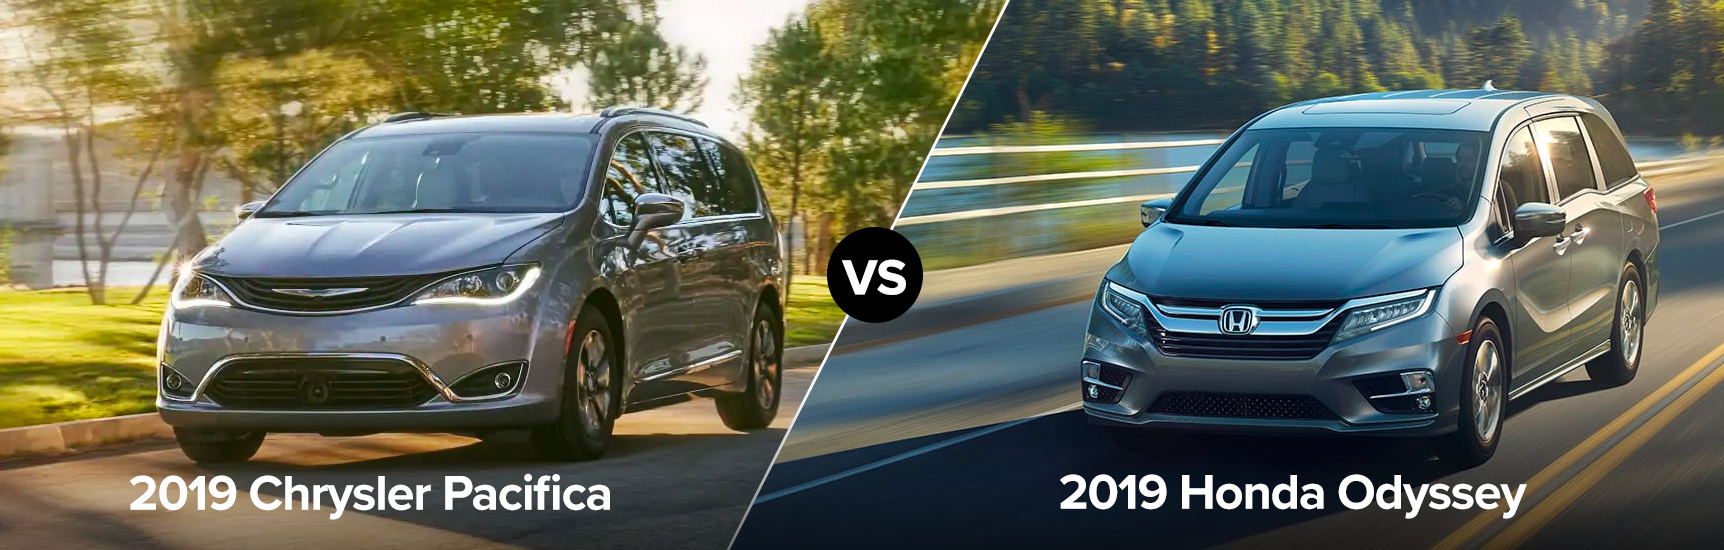 2019 Chrysler Pacifica vs Honda Odyssey Chicago IL